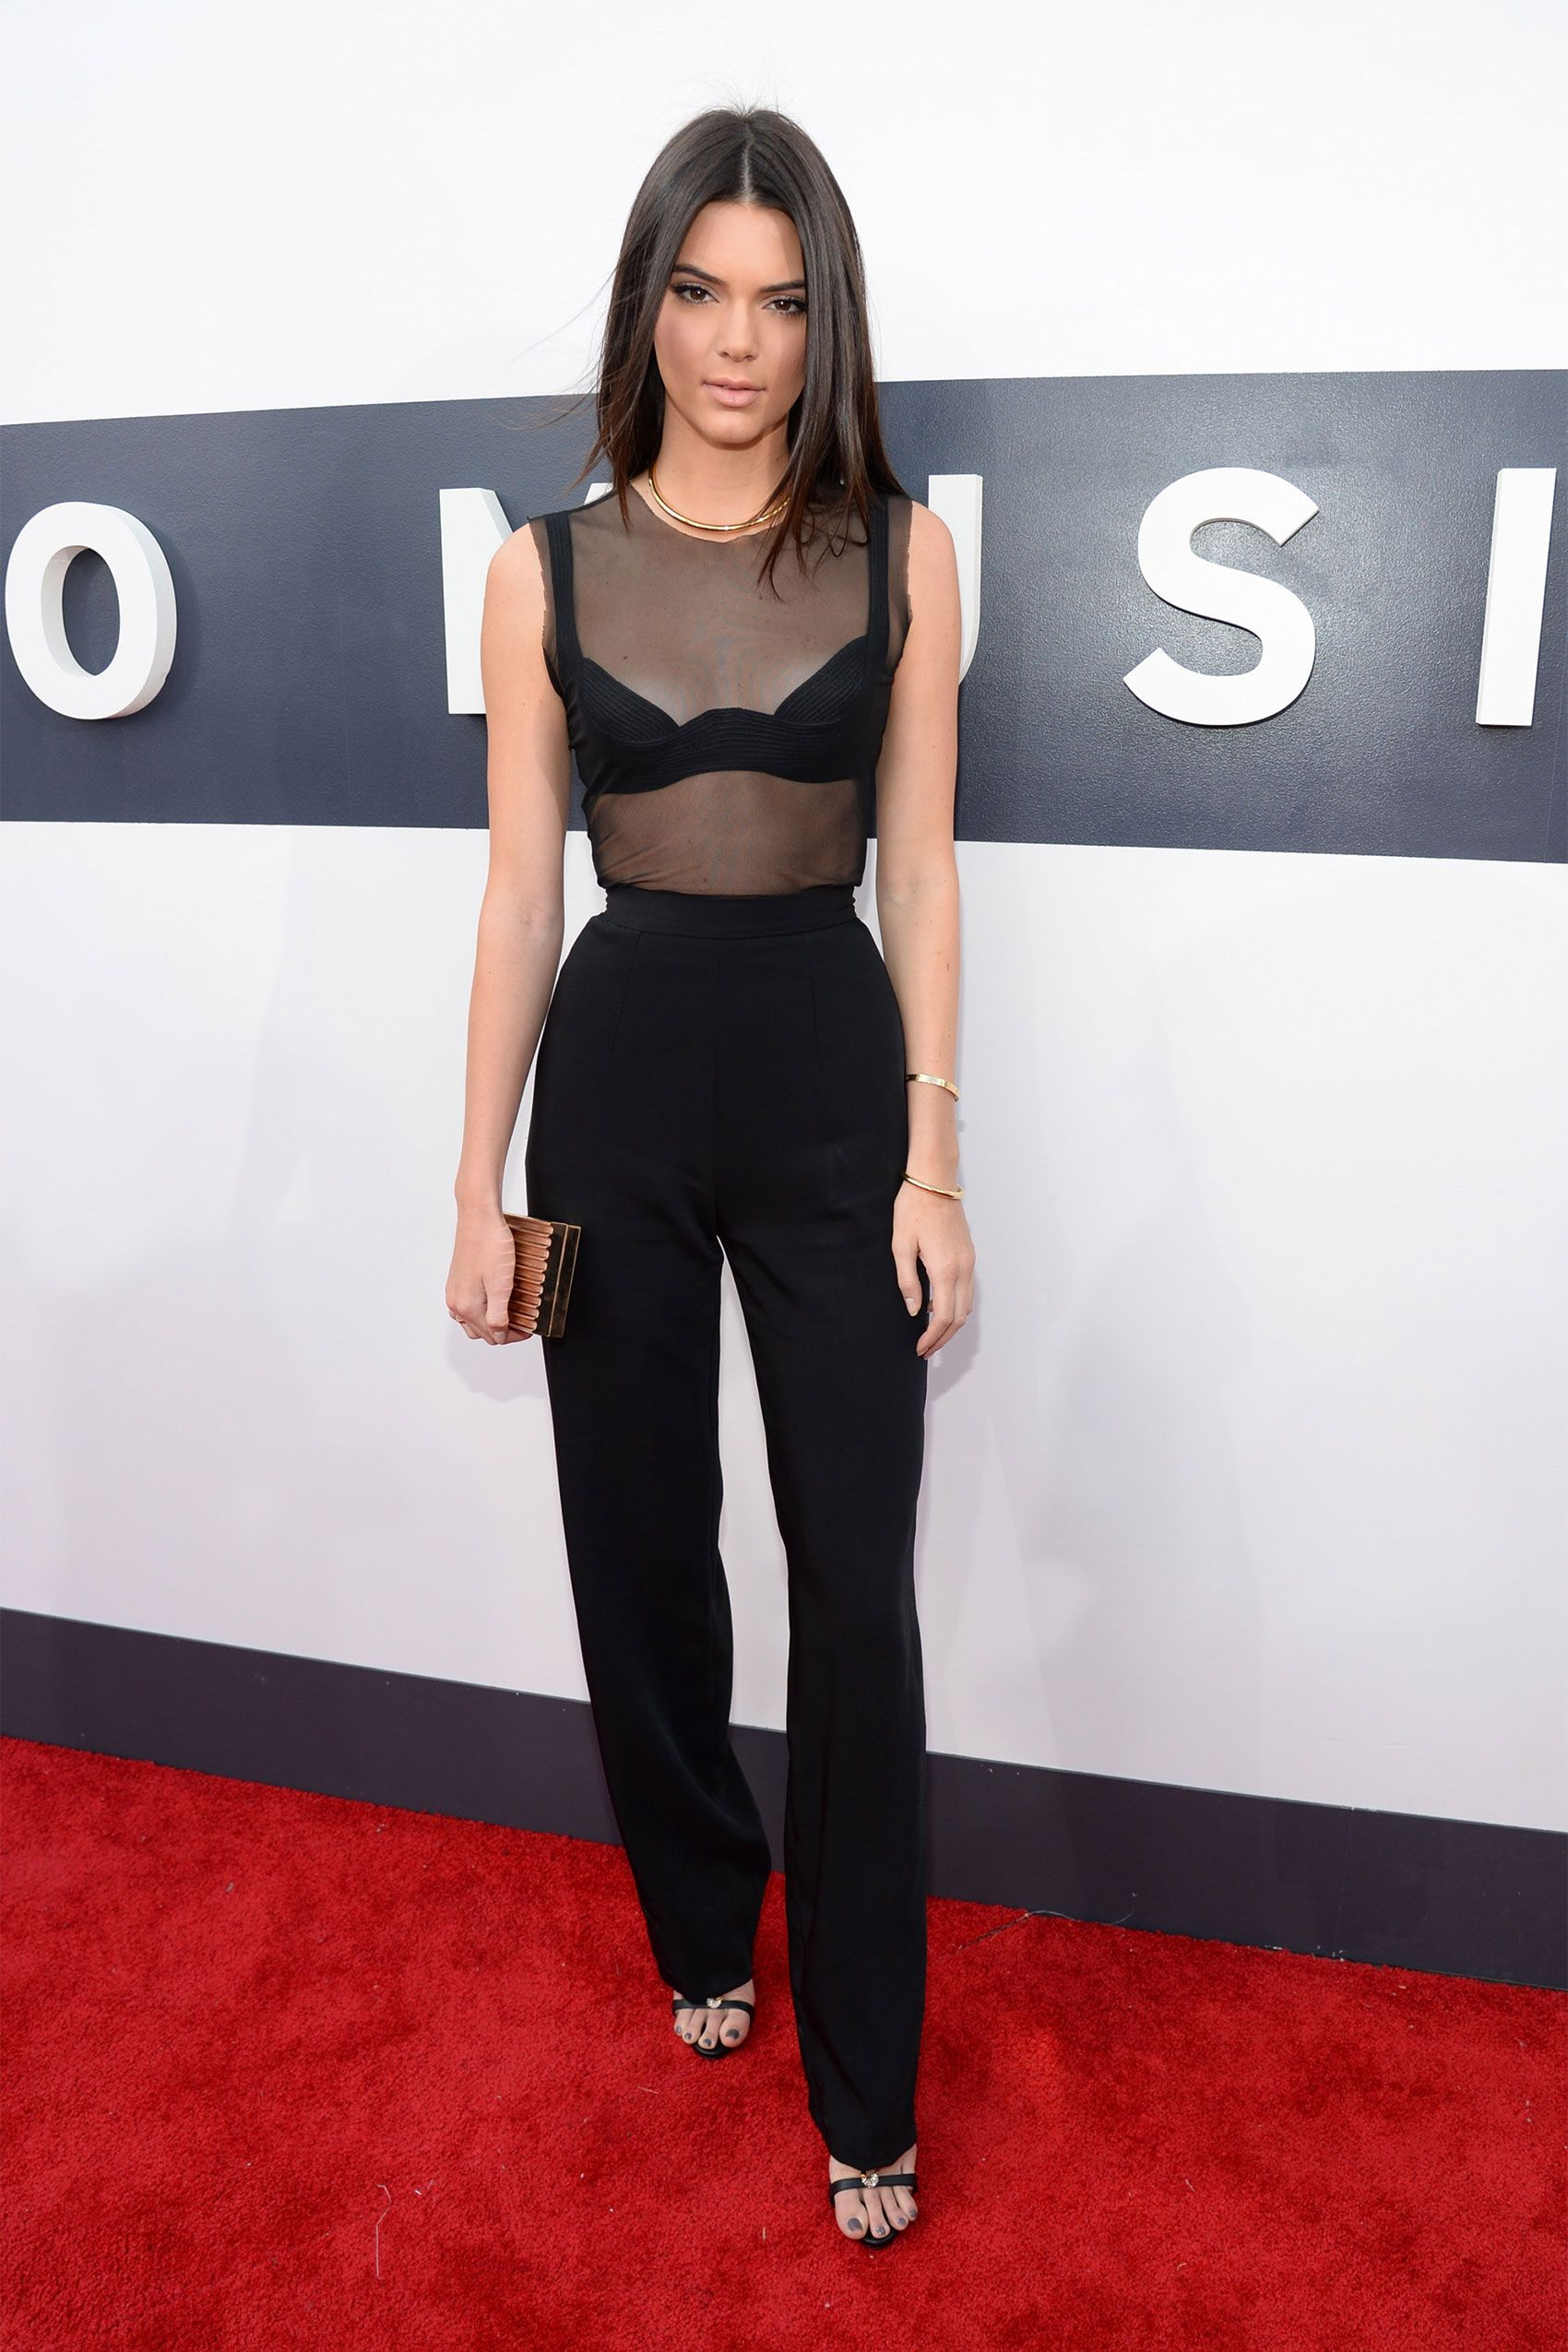 Kendall Jenner's Most Memorable Red Carpet Moments